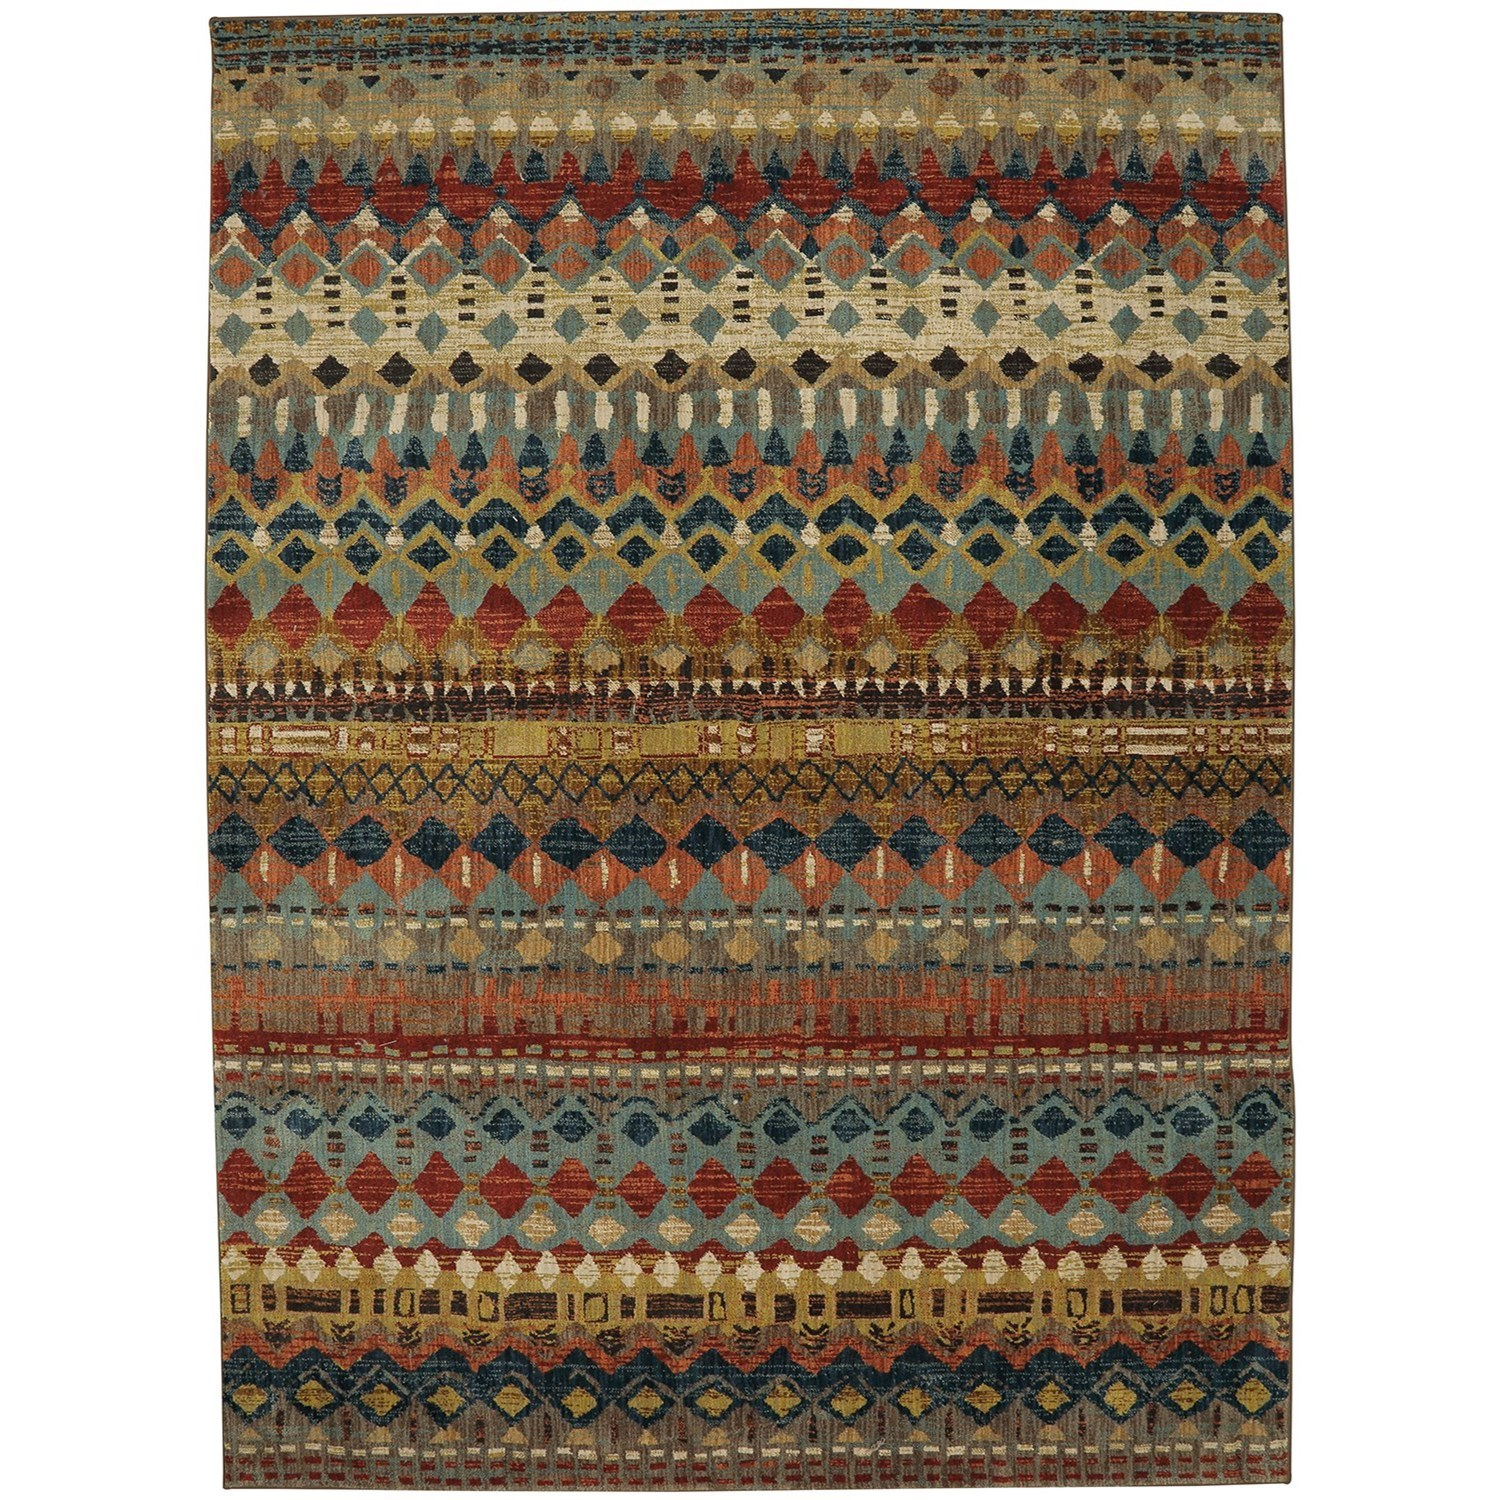 "Spice Market 5' 3""x7' 10"" Rectangle Geometric Area Rug by Karastan Rugs at Darvin Furniture"